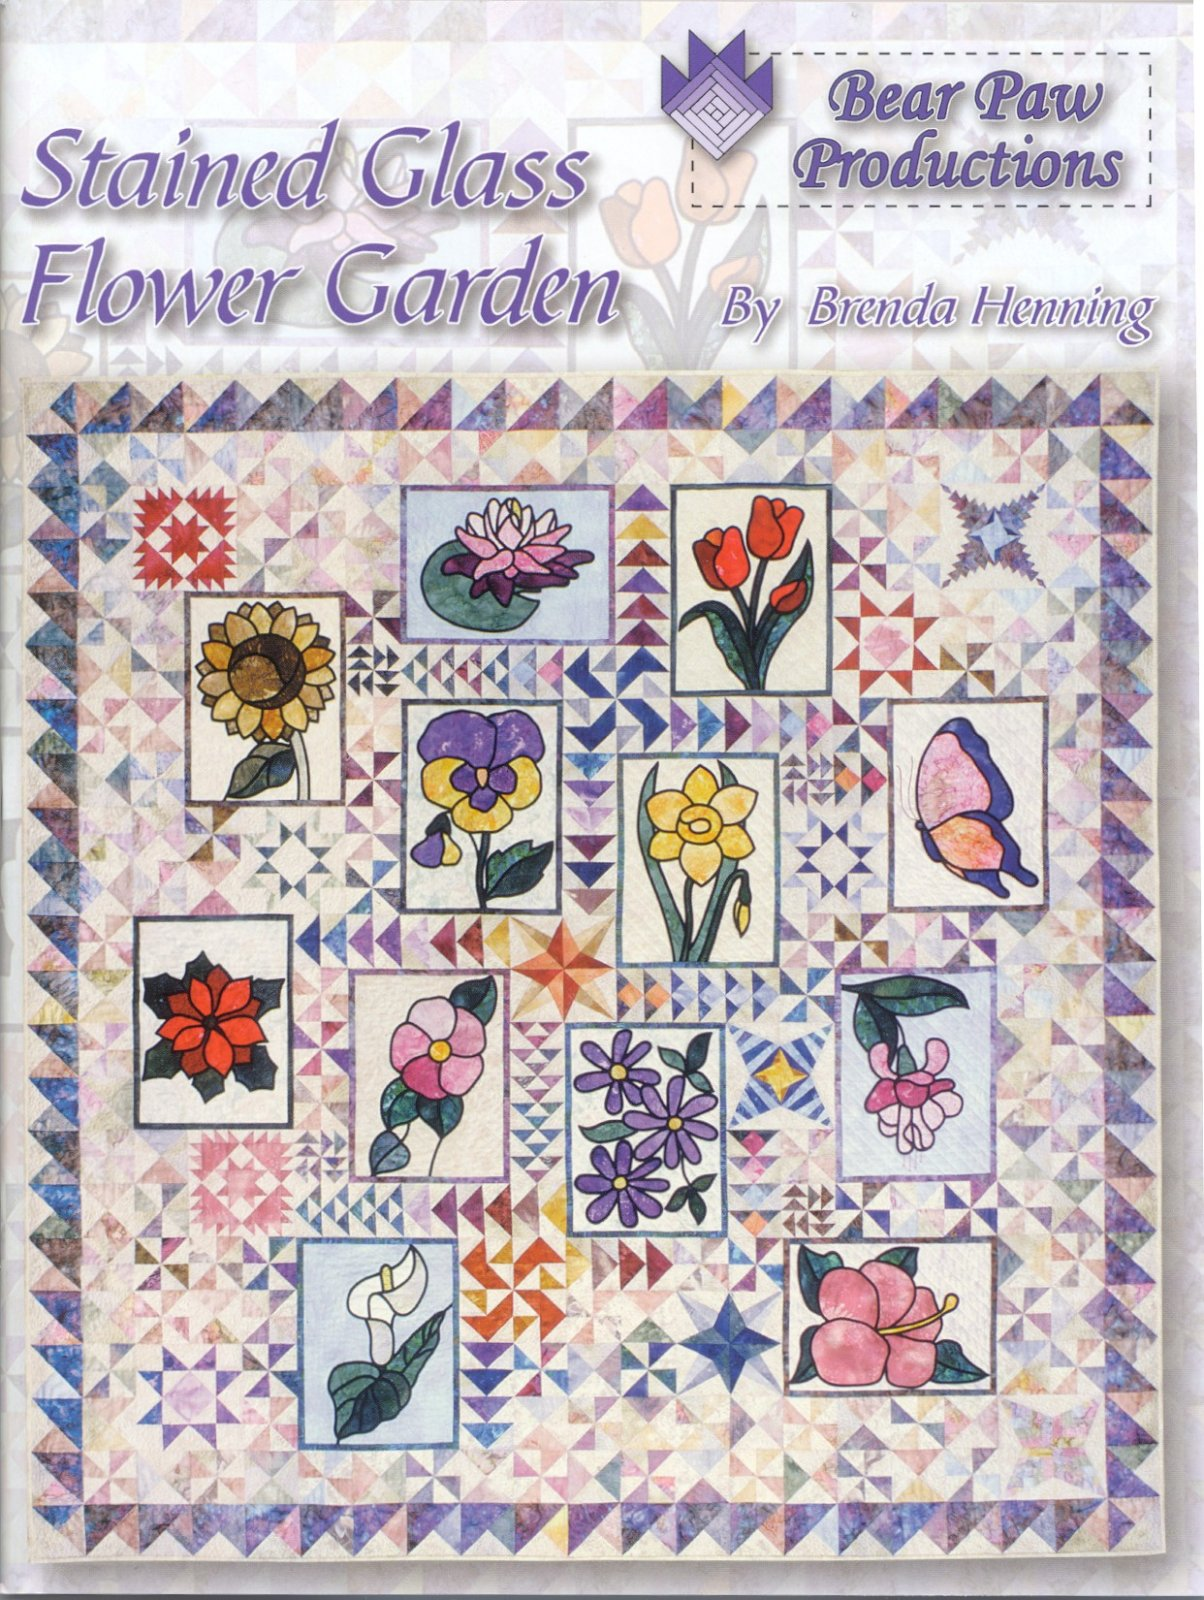 Stained Glass Flower Garden